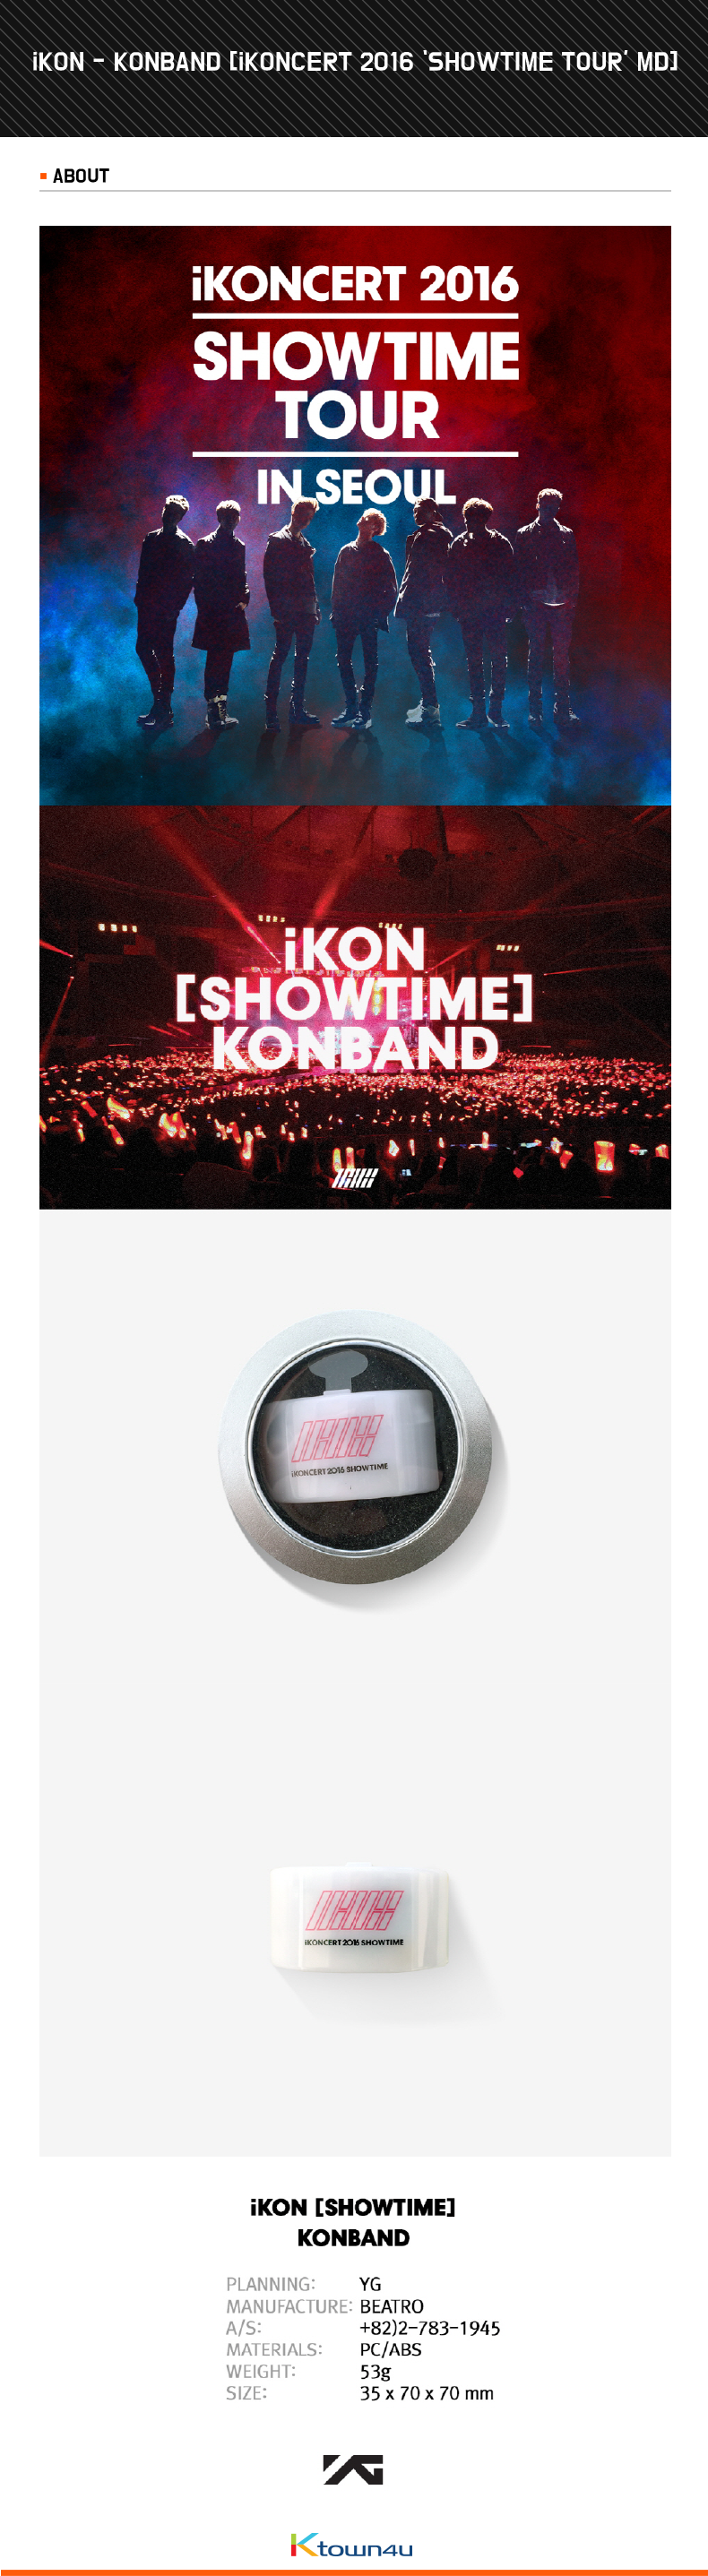 iKON - KONBAND 手环 [iKONCERT 'SHOWTIME TOUR' 周边]